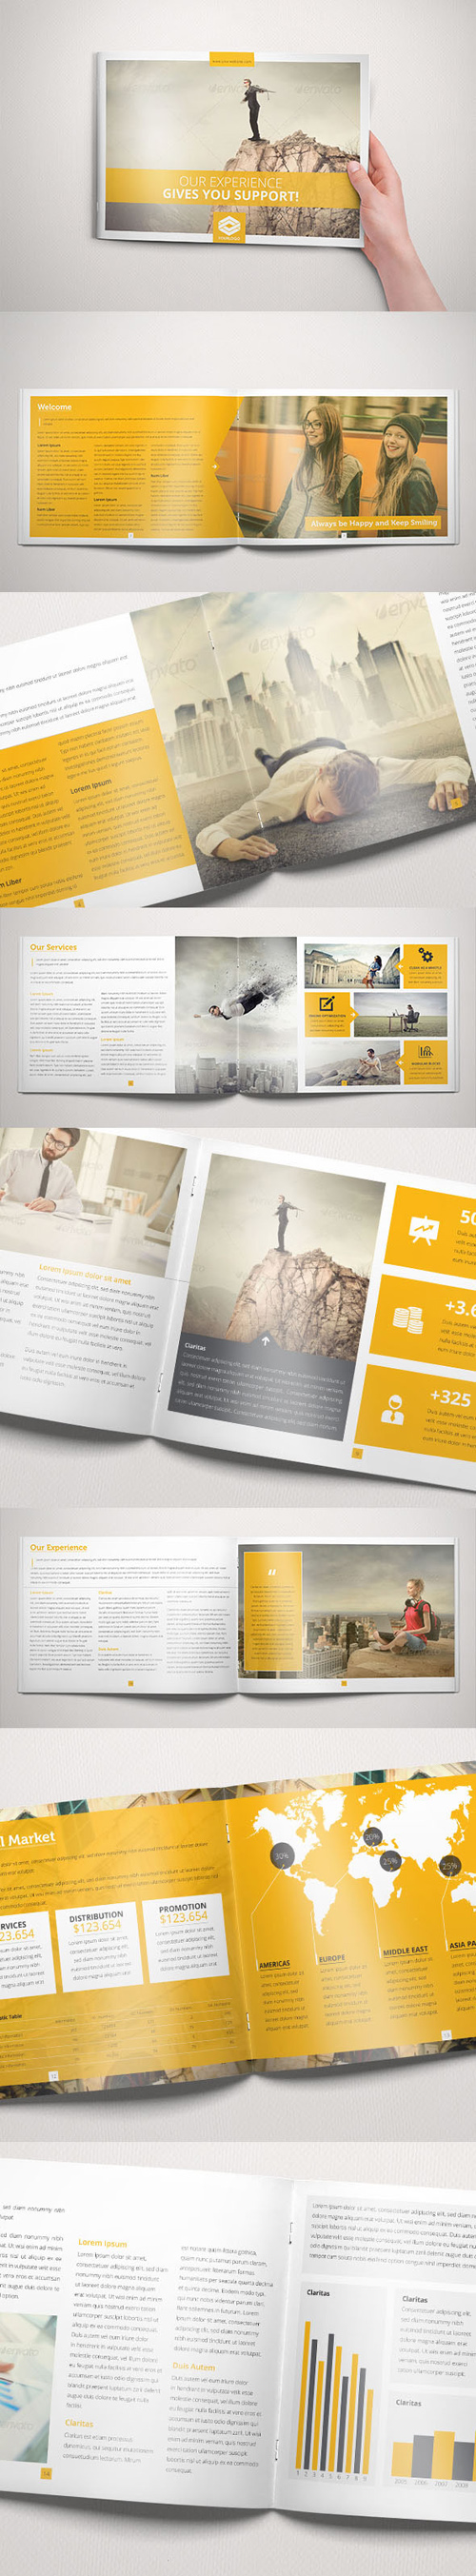 Brochure designs tri fold bi fold brochures design for Brochure design layout ideas